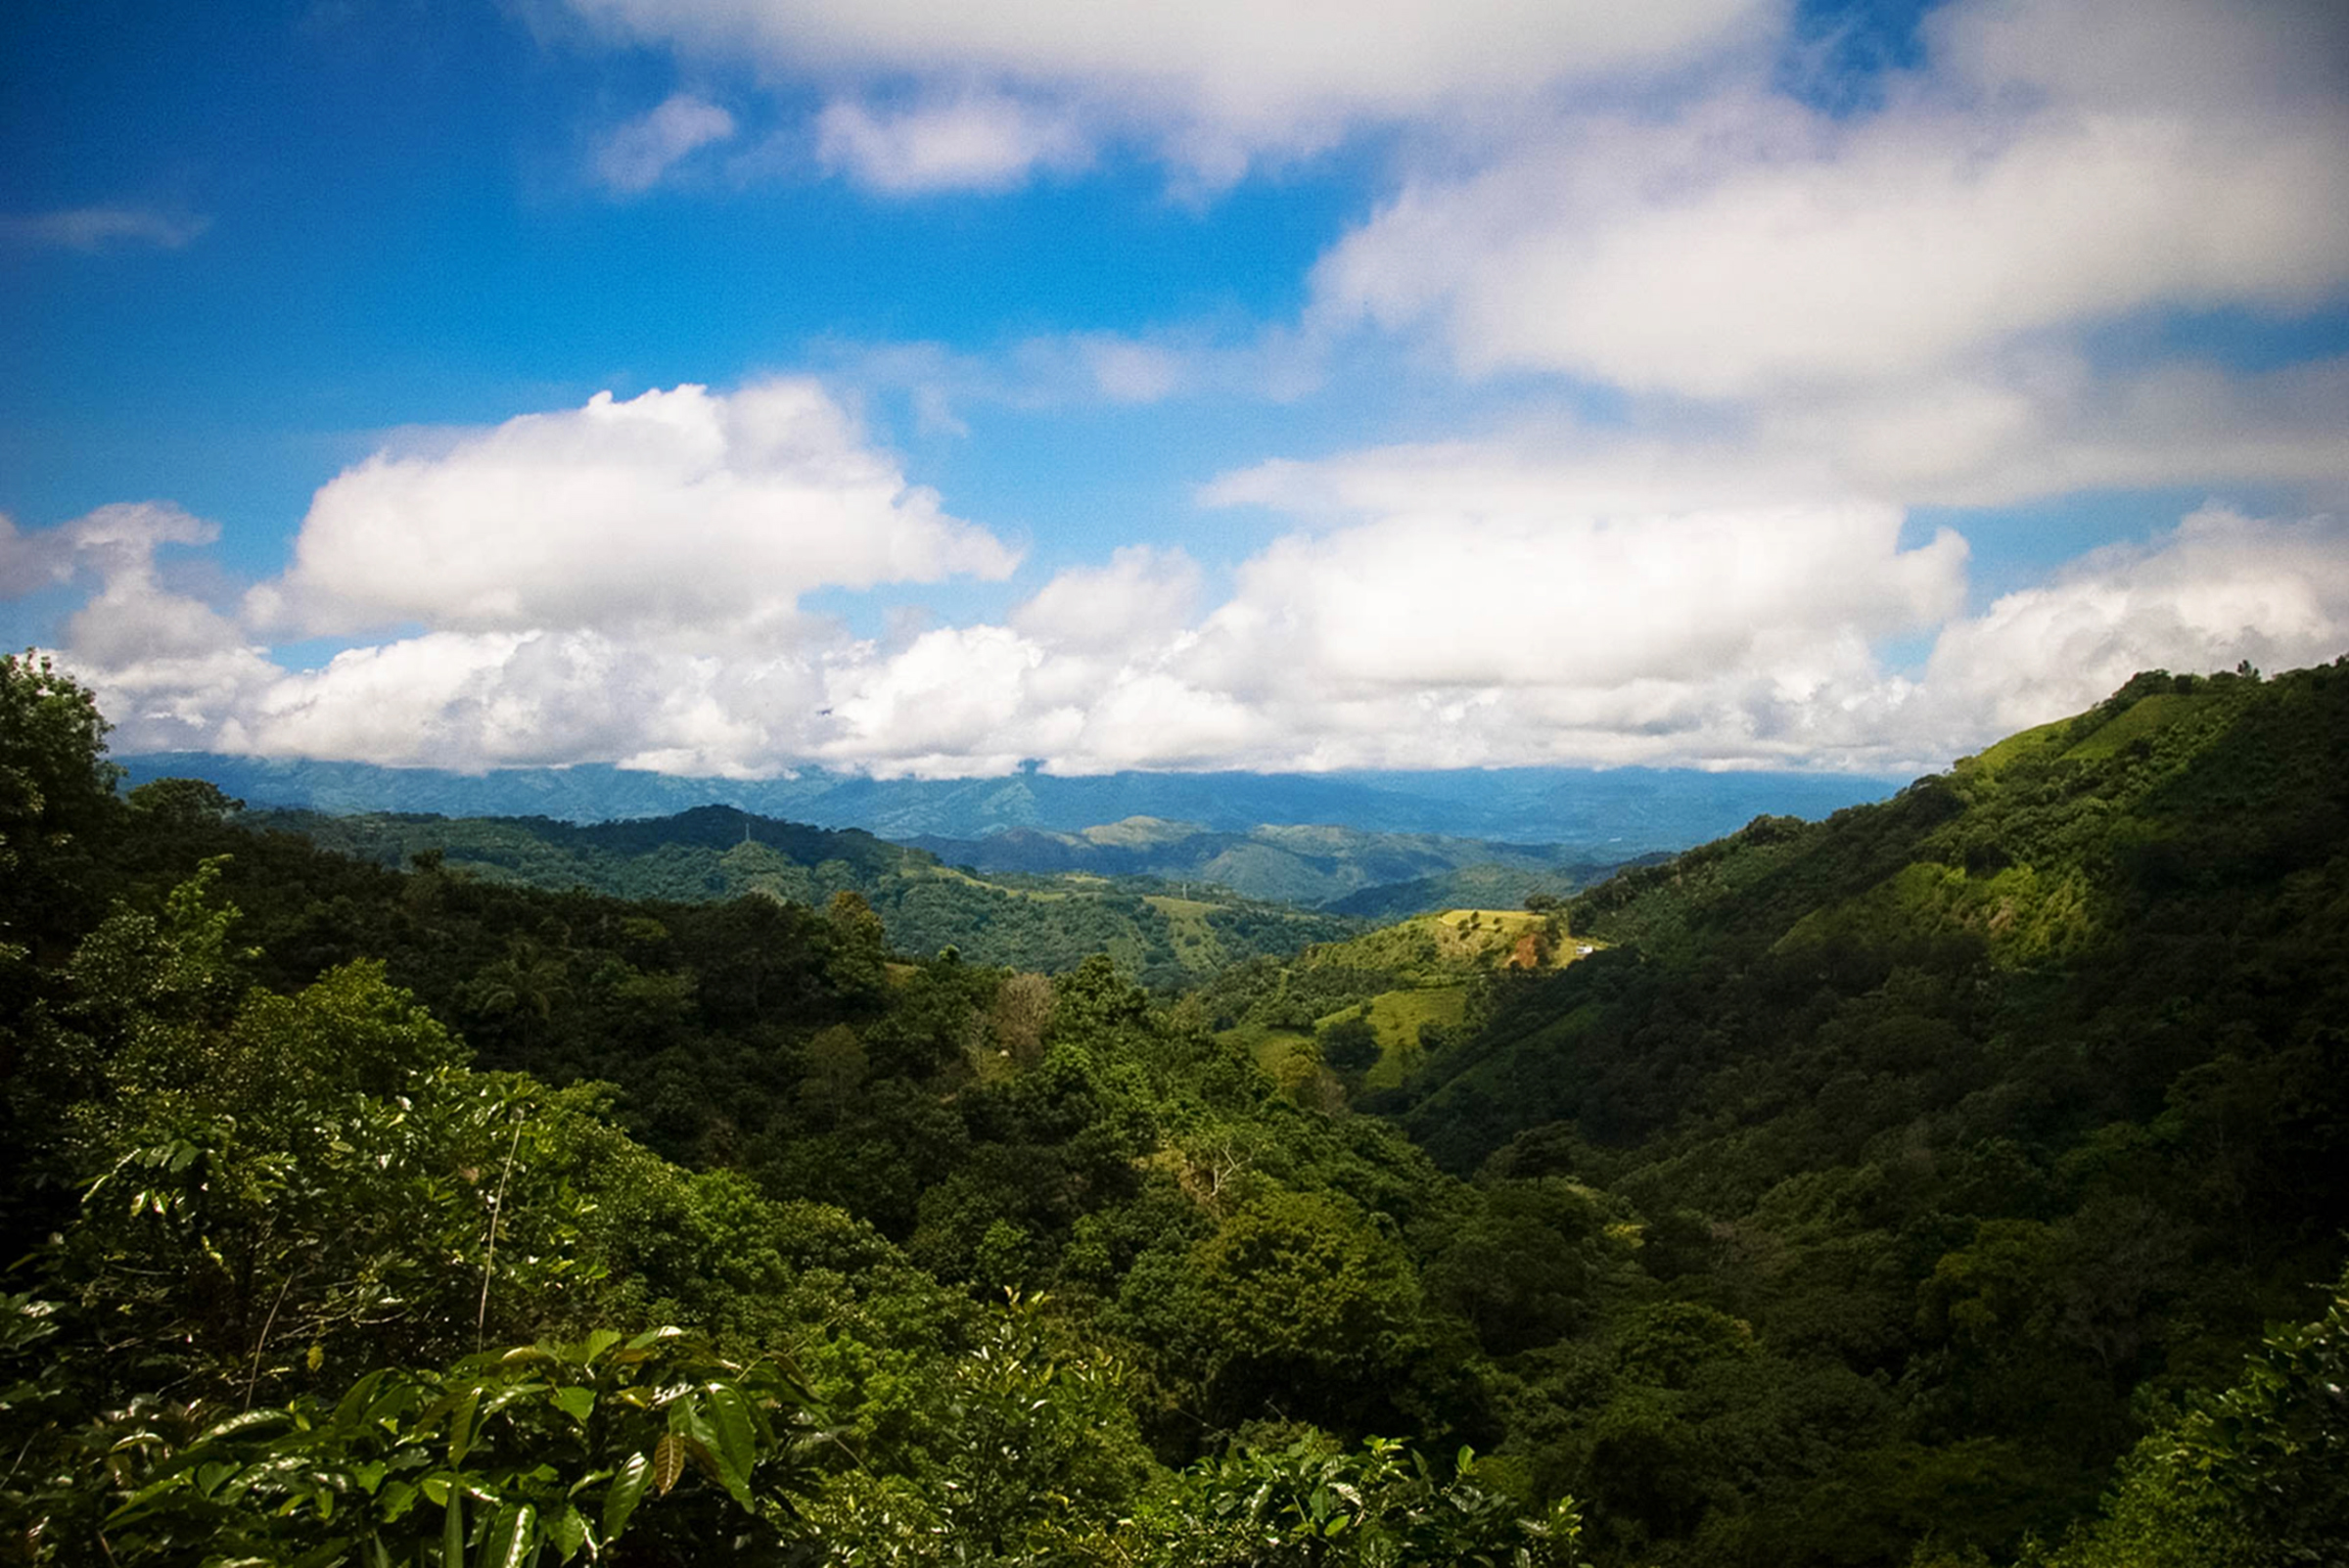 Rolling mountains with coffee plants, Parque Manuel Antonio